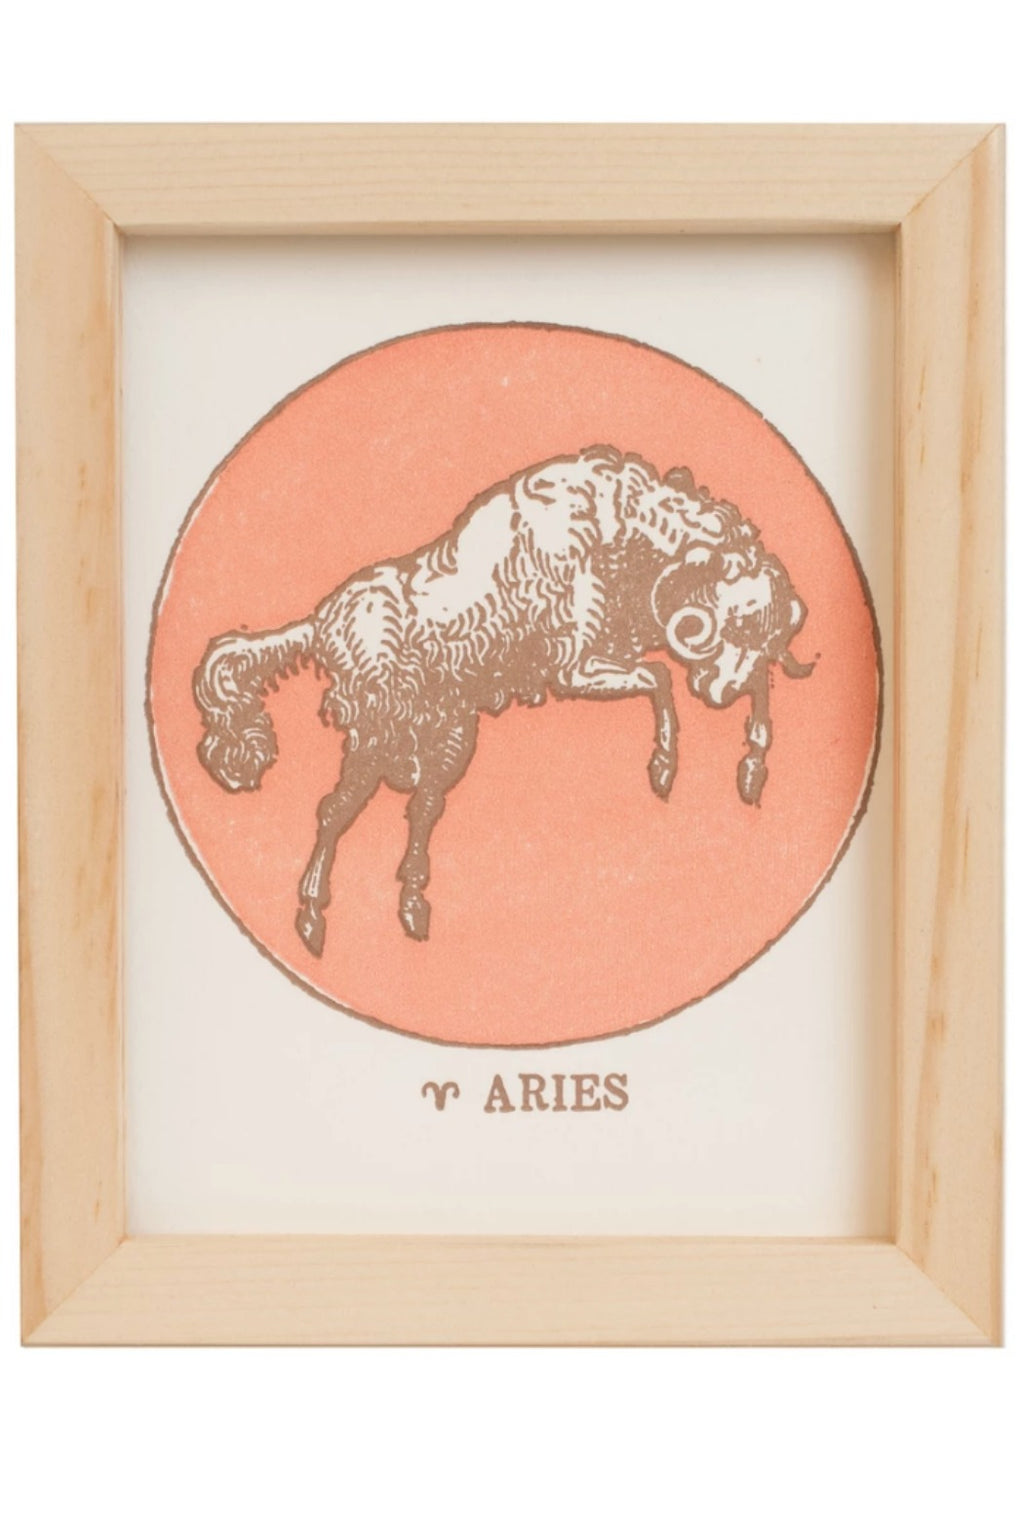 Margins Zodiac Card - Aries